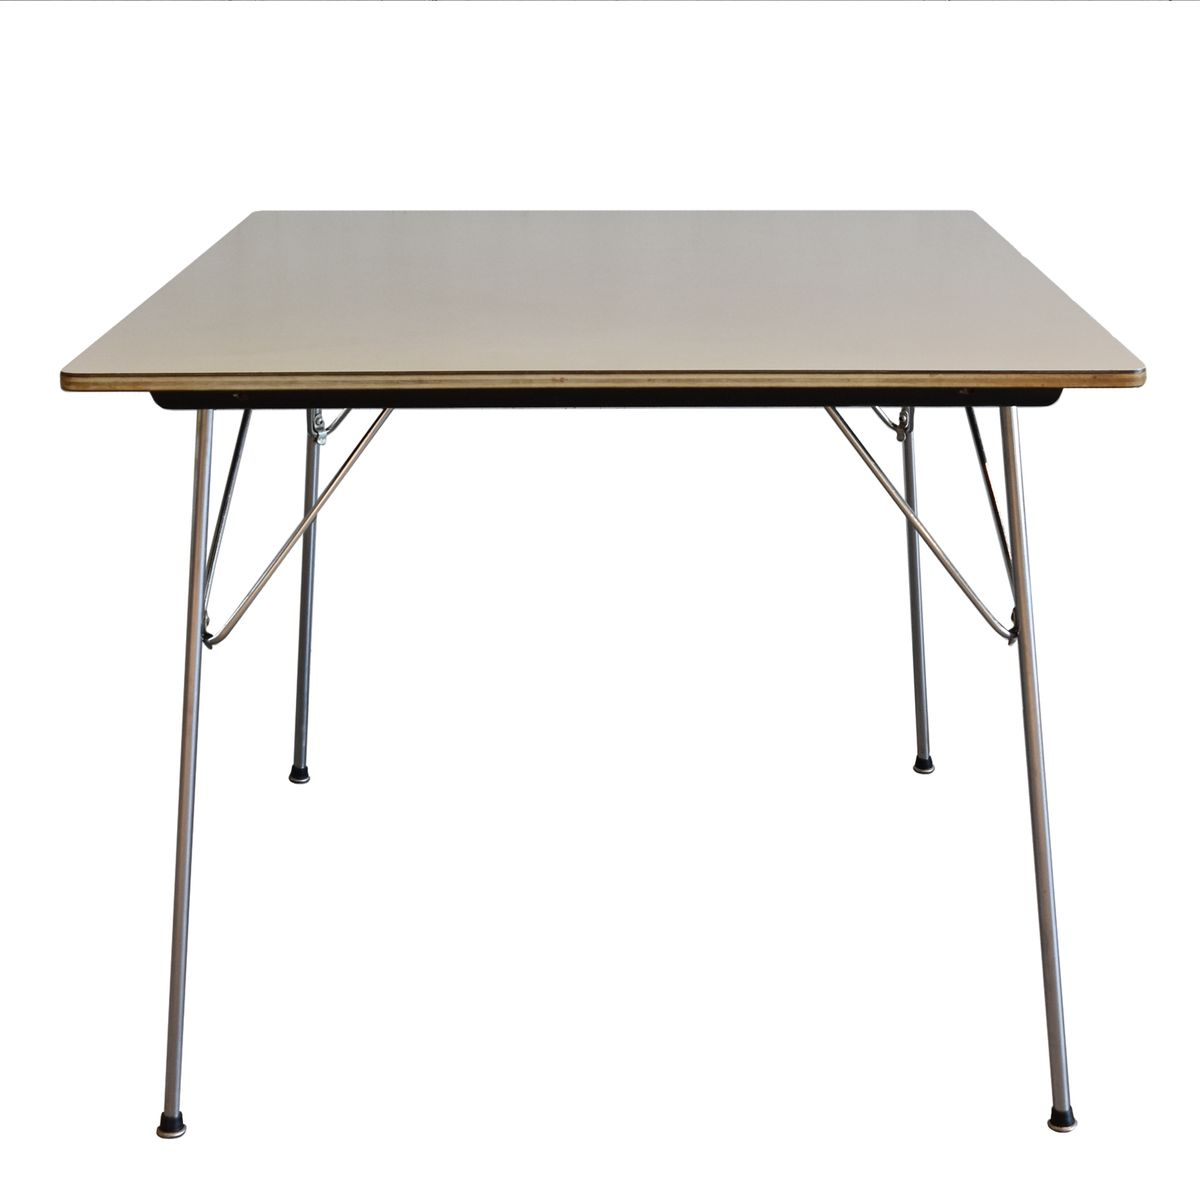 Dtm20 table by charles and ray eames for herman miller for for Table charles eames